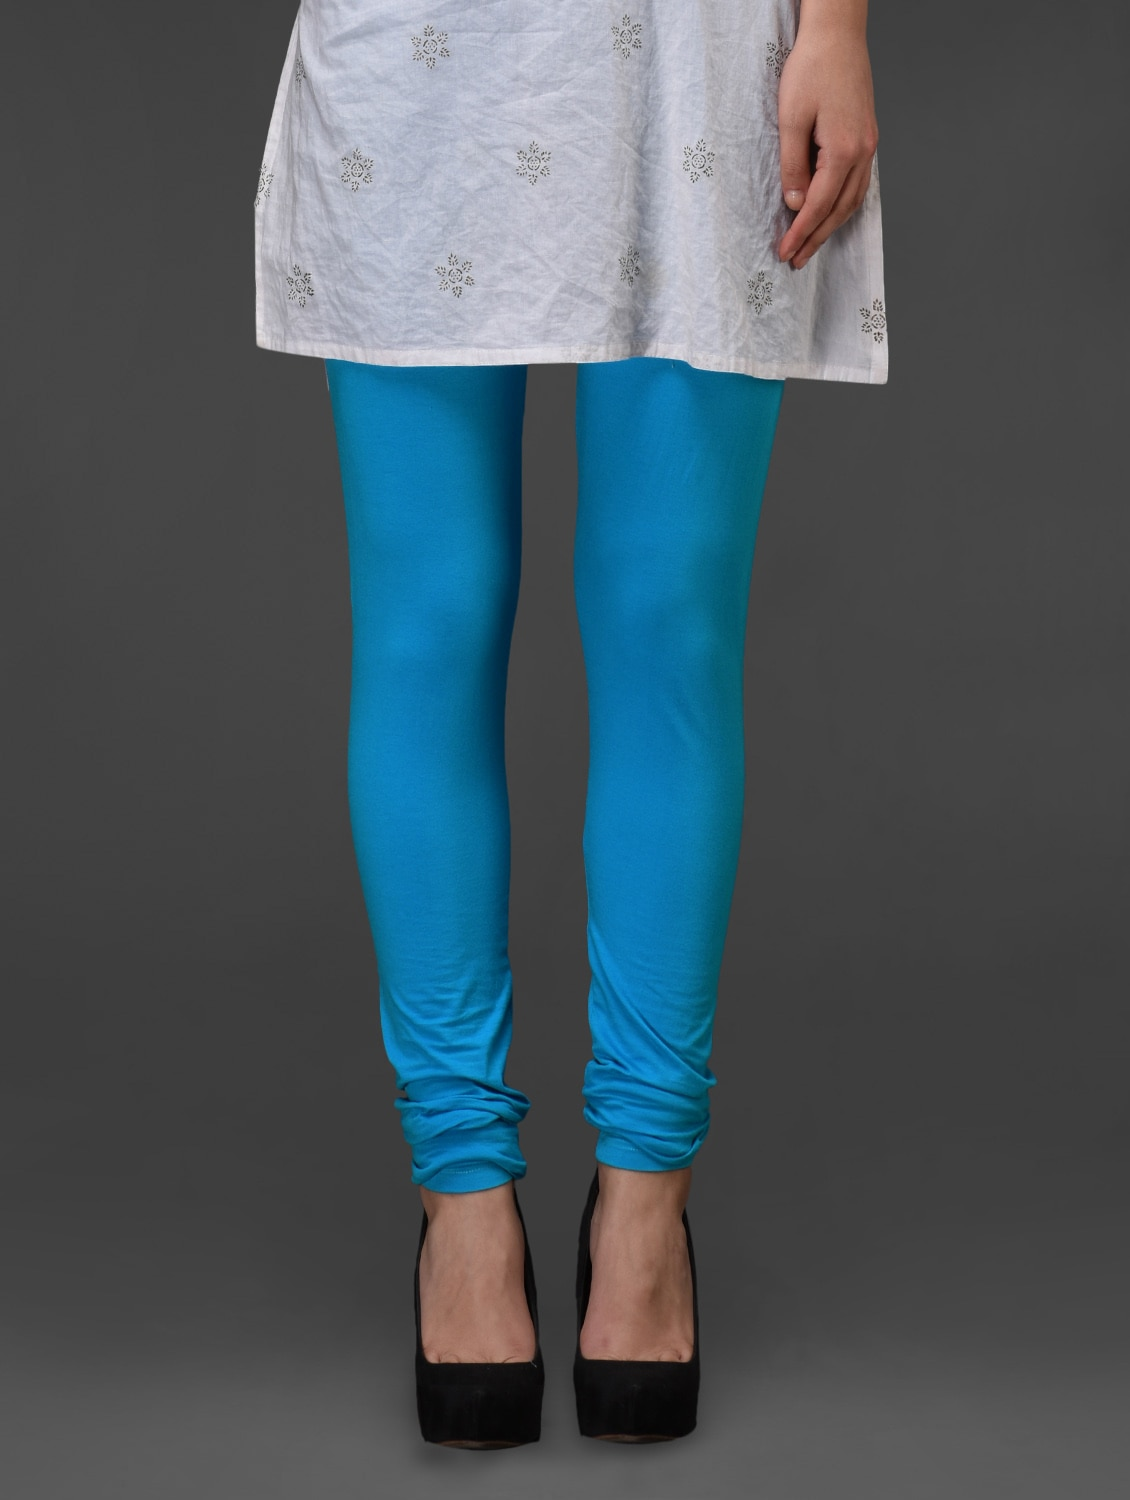 Turquoise Plain Cotton Churidar - Fashionexpo